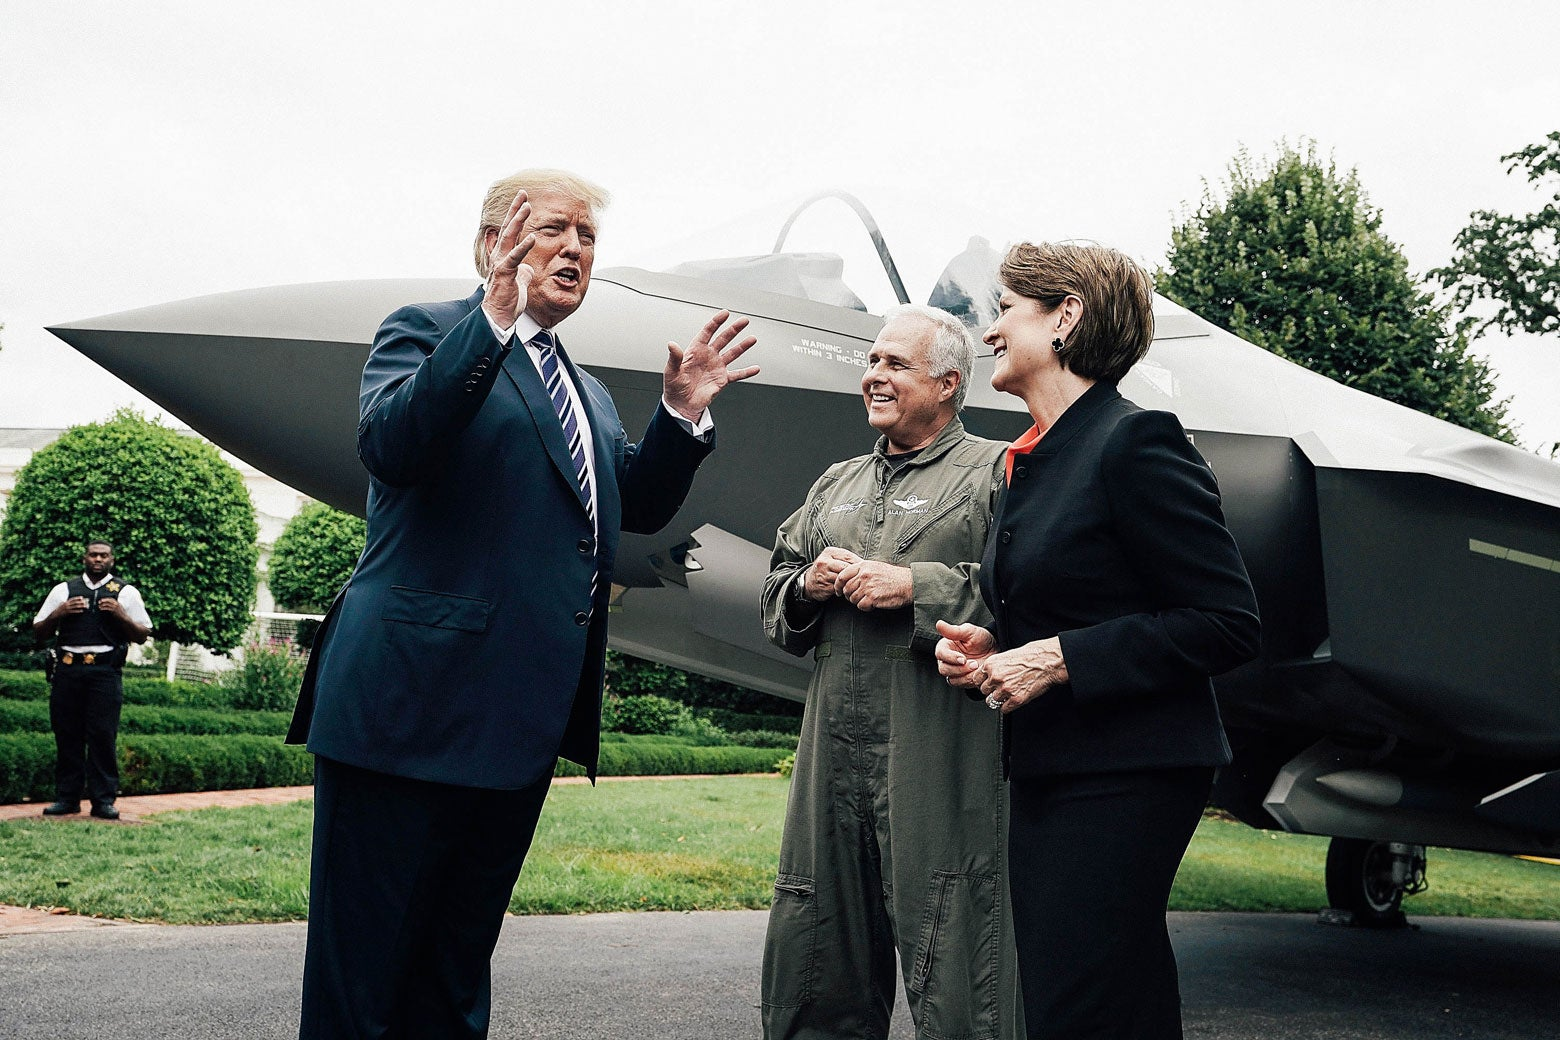 U.S. President Donald Trump talks to Lockheed chief test pilot Alan Norman and CEO Martin Marillyn Hewson in front of an F-35 fighter jet during the 2018 Made in America Product Showcase on July 23.